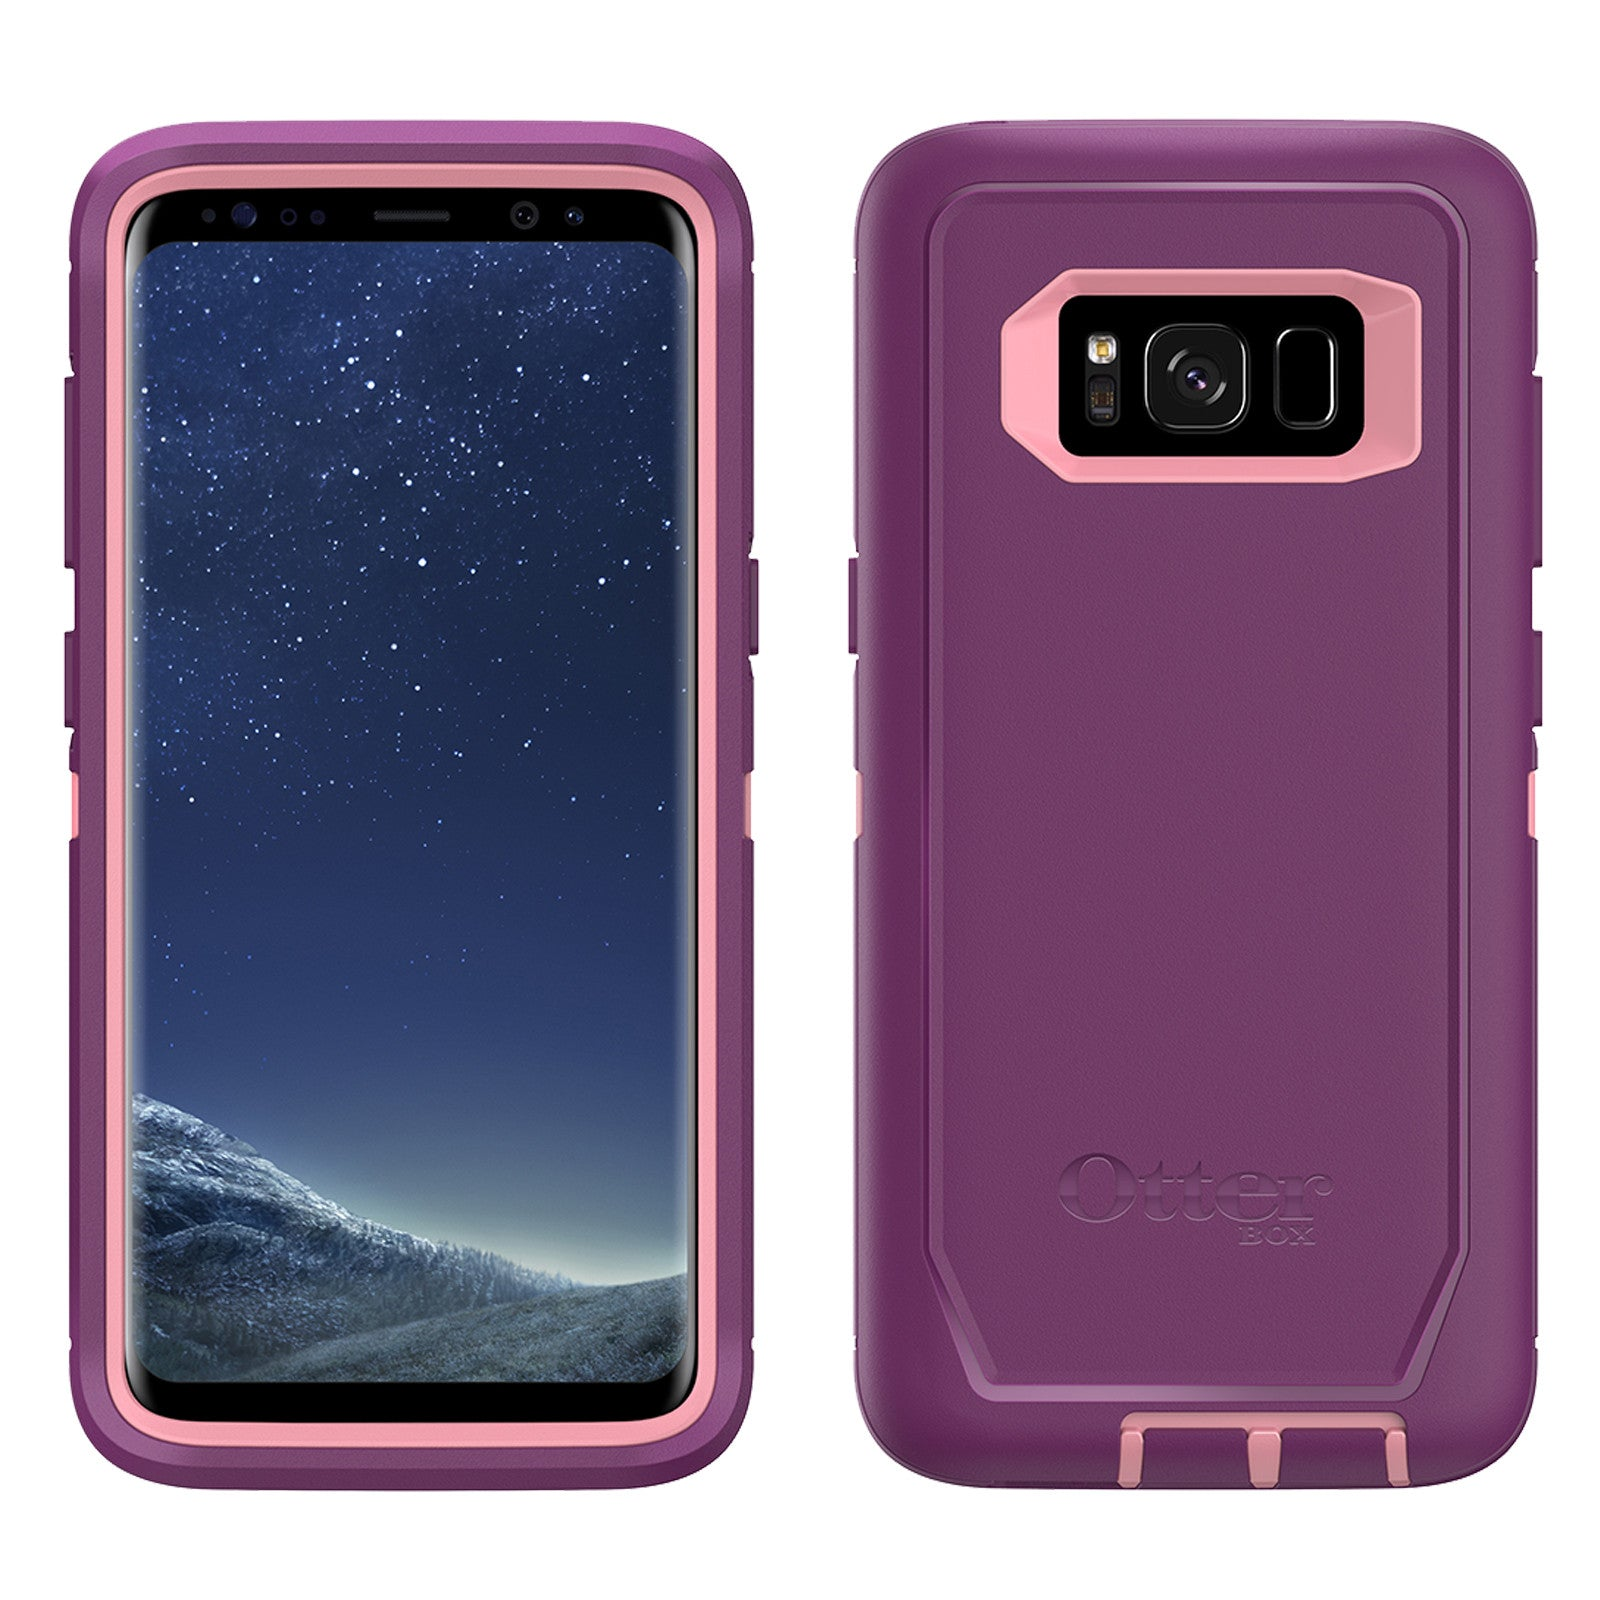 pretty nice 1bc2c b8fdc Otterbox Defender Case For Samsung Galaxy S8 Plus - Plum Way